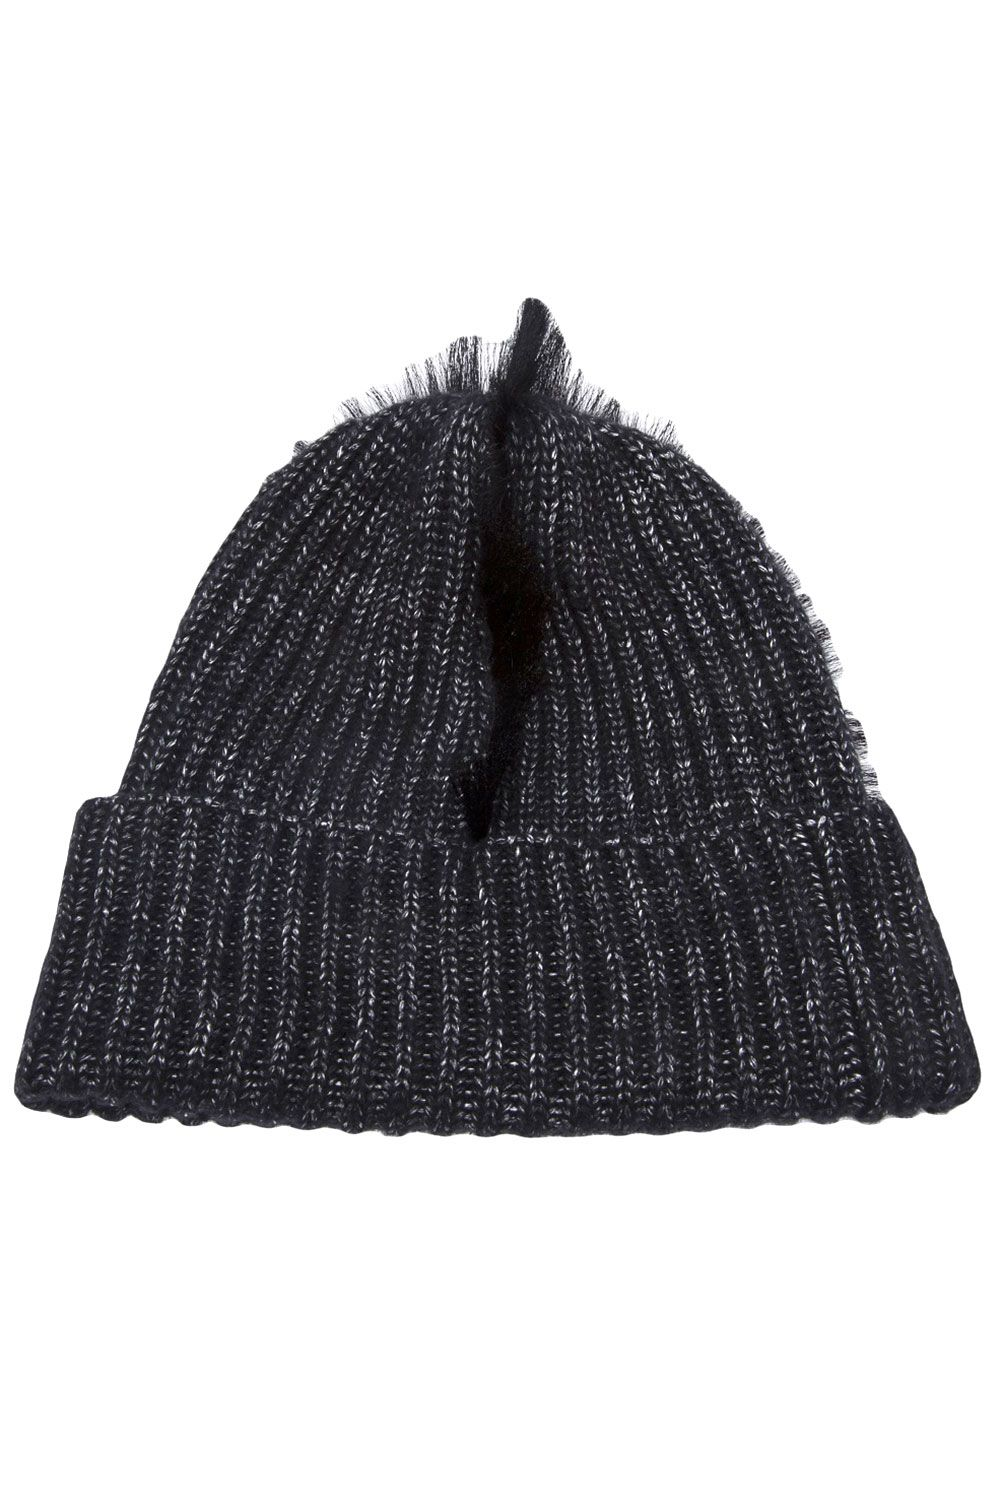 12518e77f7262 9 Beanie Hats to Top Off Your Winter Look  Gigi Burris hat